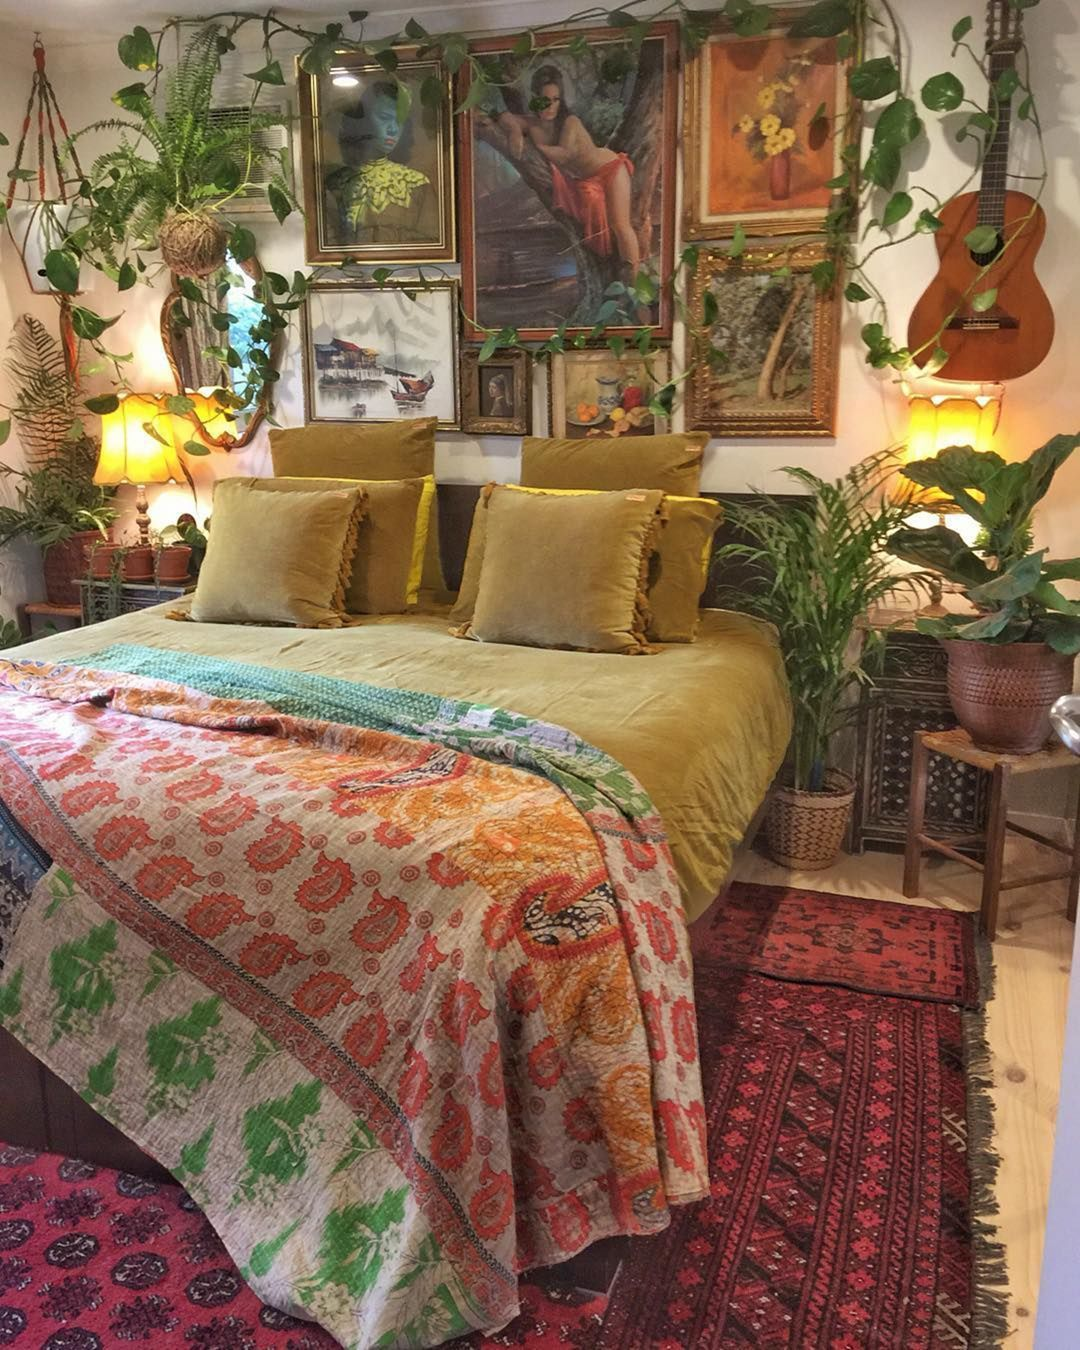 30 Cozy Bohemian Bedroom Design Ideas Must You Try images